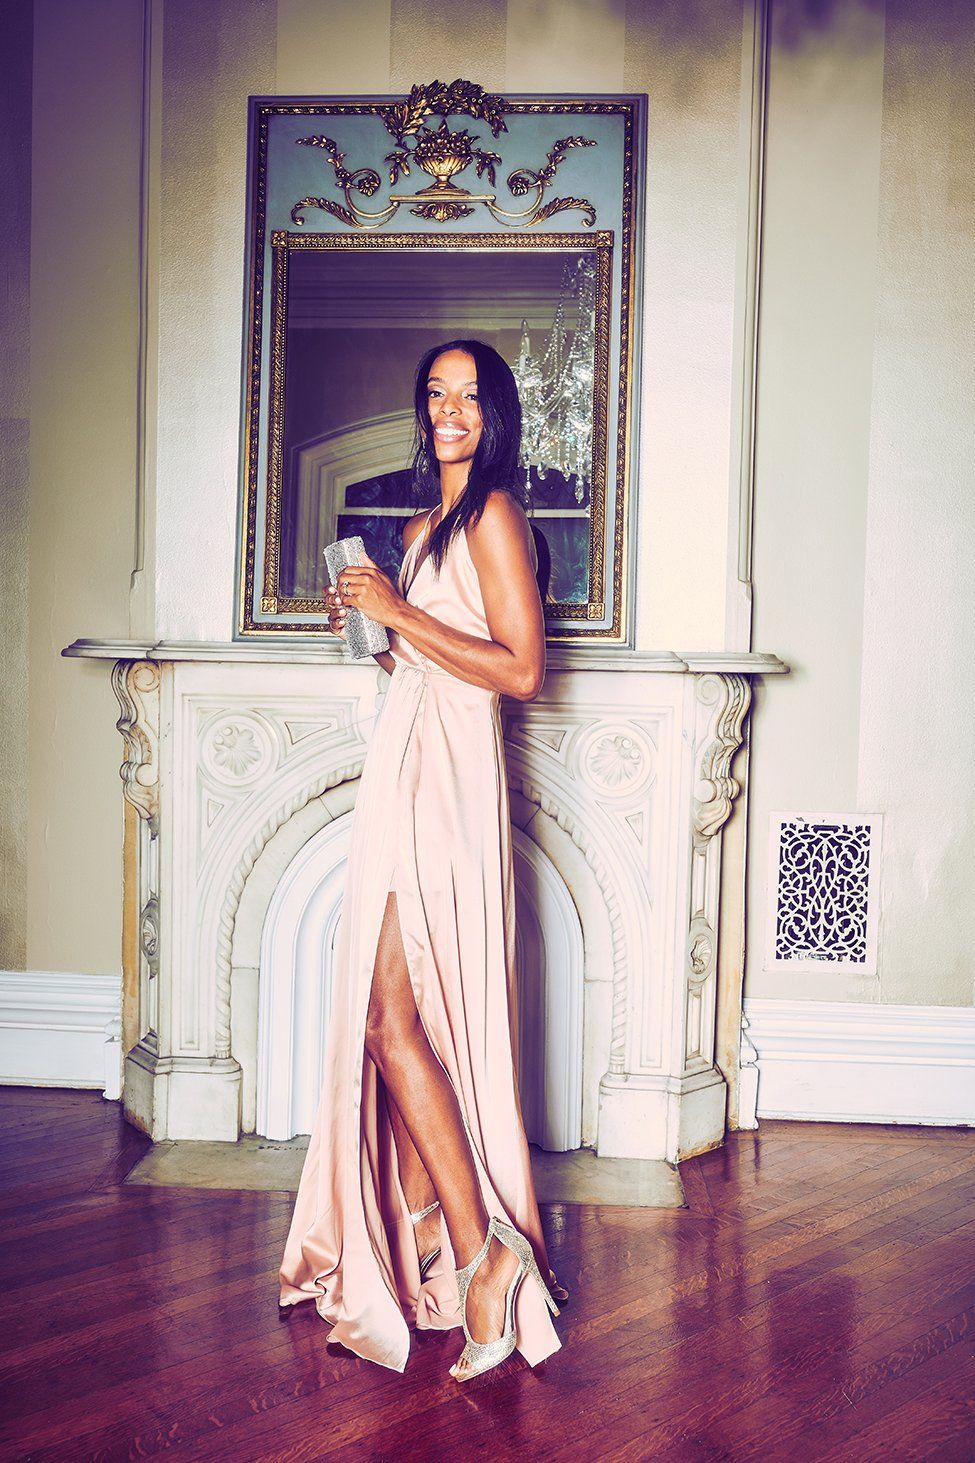 Looking For A Party Dress This Long Slinky Rose Gold With Sultry Is Perfect Festive Night Out Holiday Dresses At David S